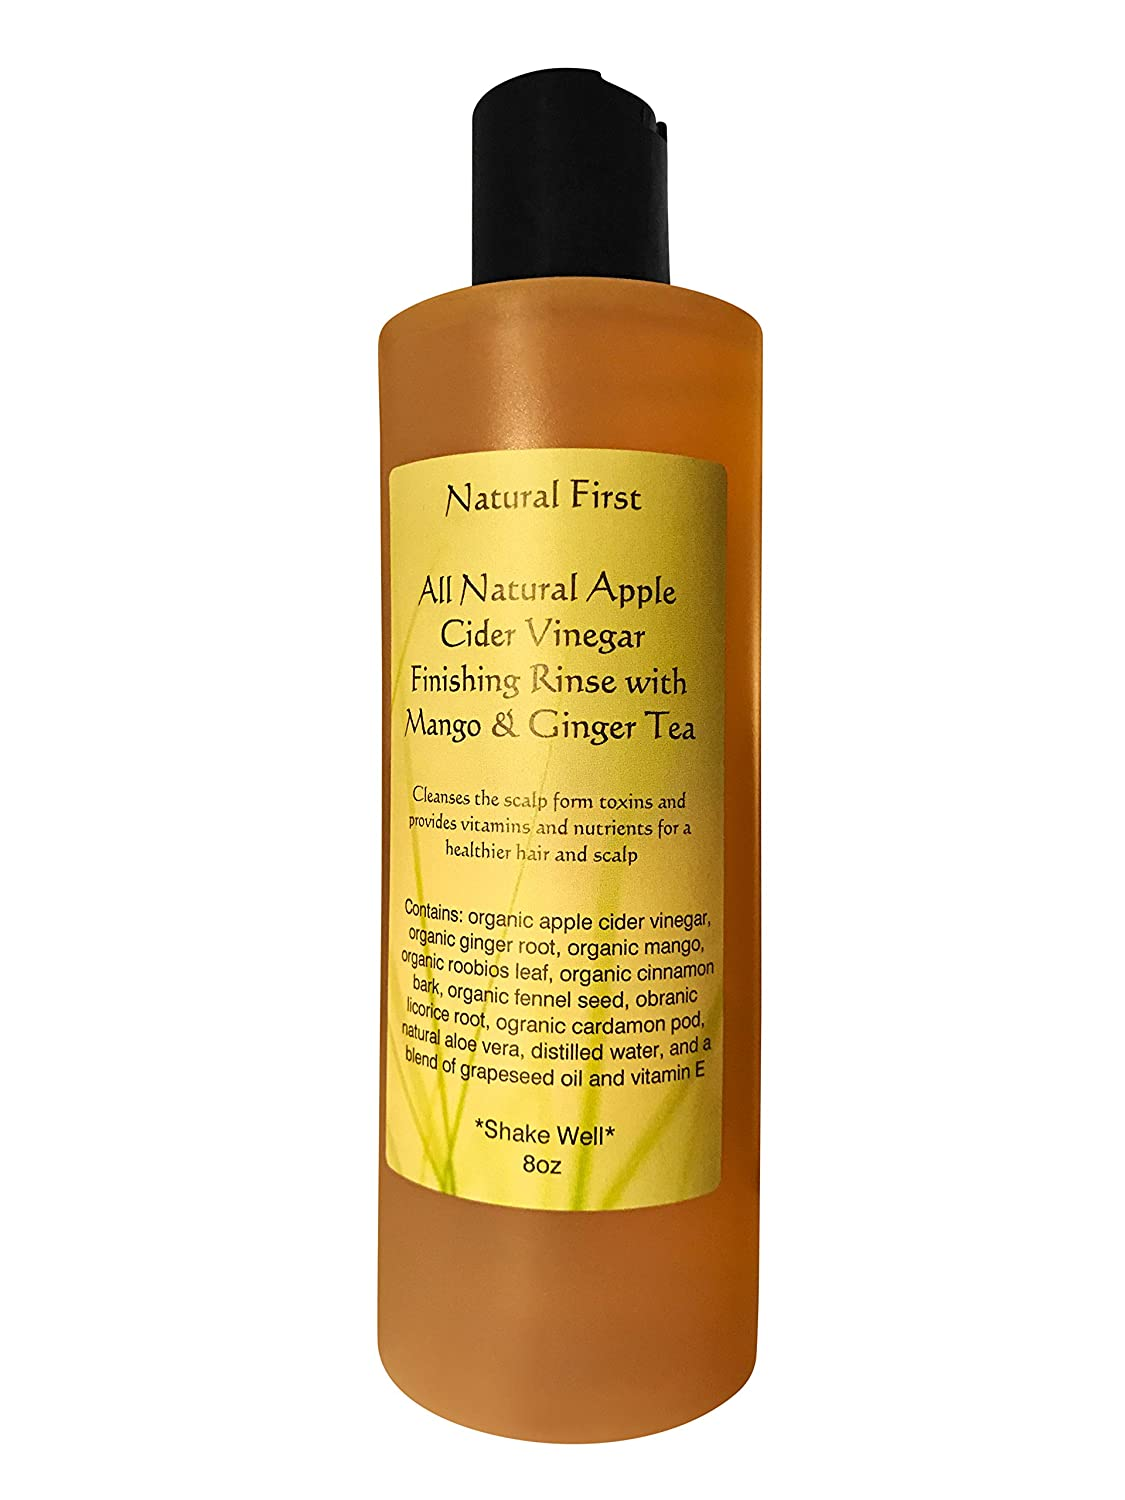 Natural First Organic Apple Cider Vinegar Finishing Vitamin and Nutrient Rinse w/Mango and Ginger Tea